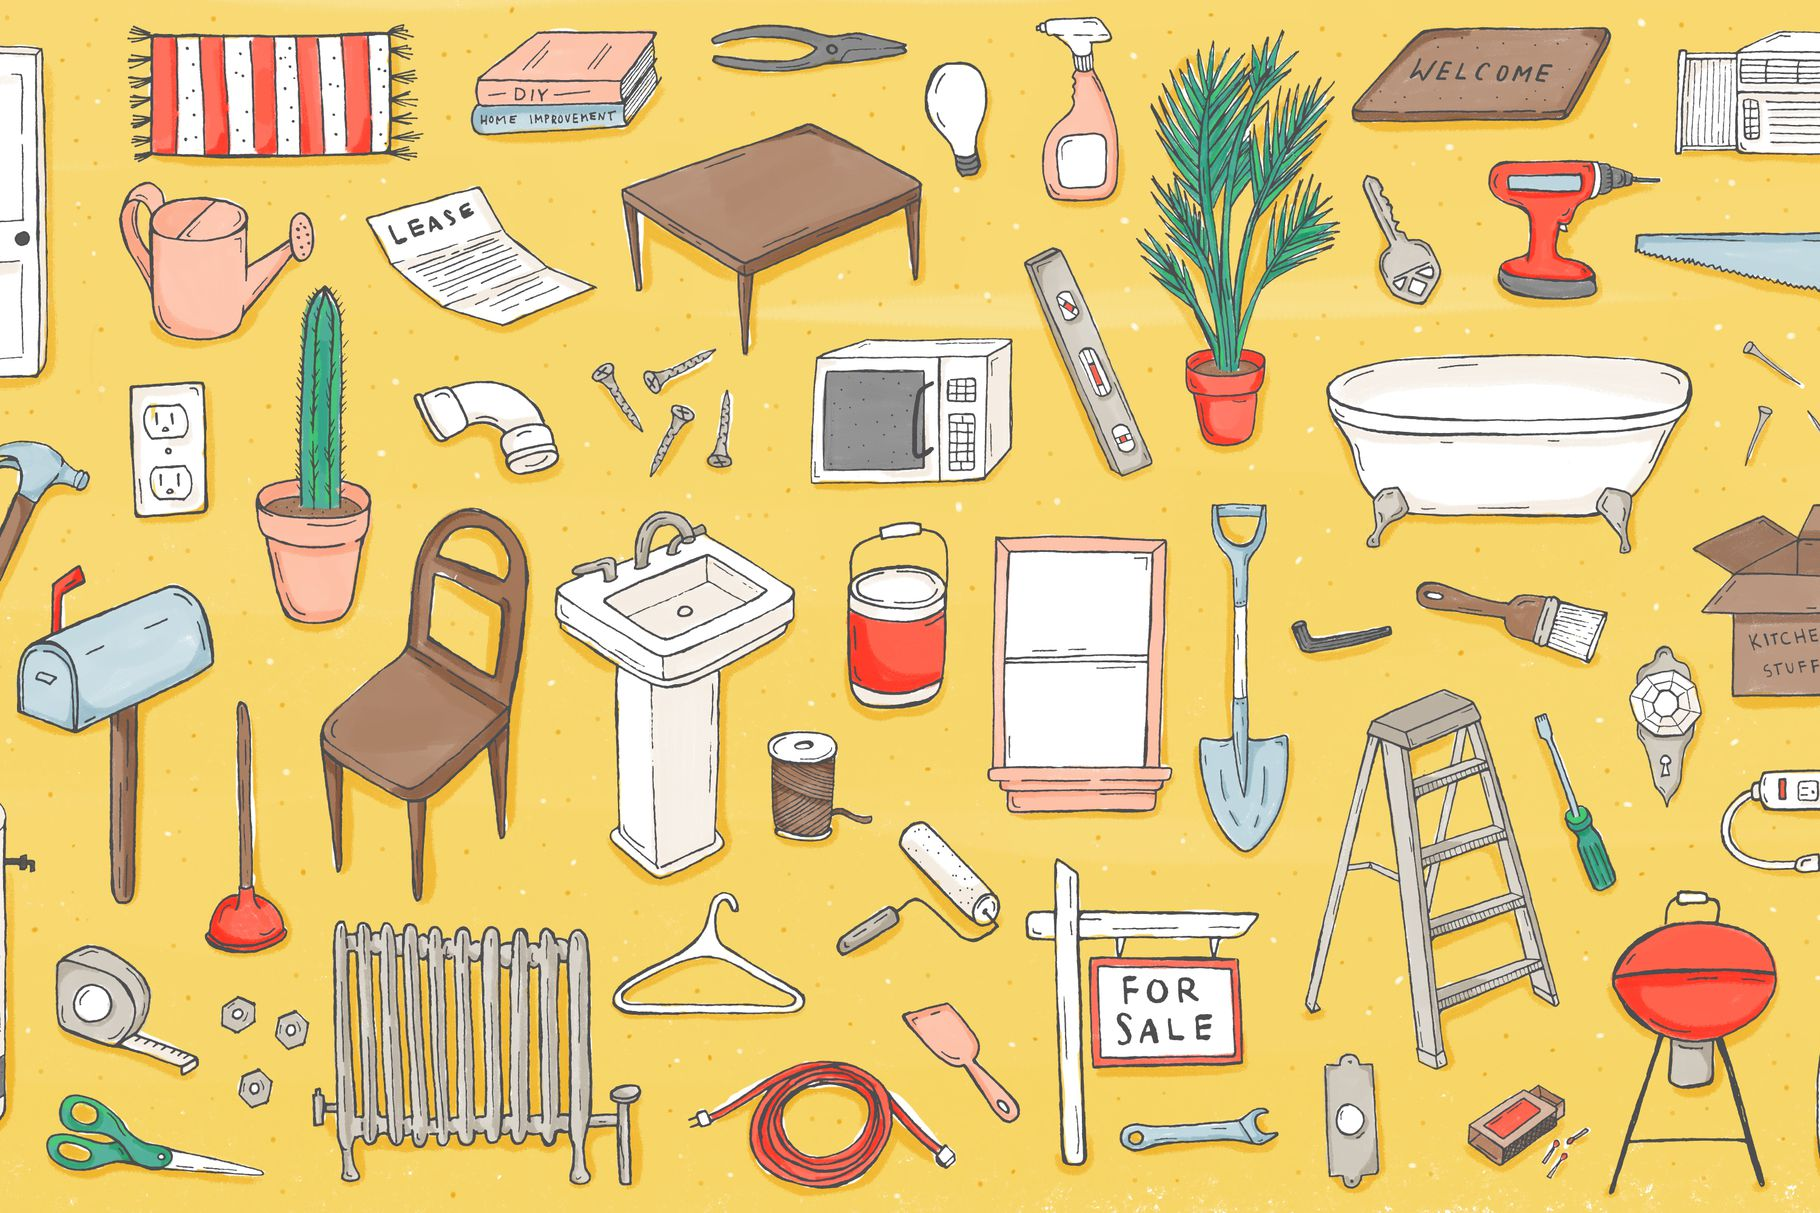 Whatever home improvement job, there's probably an app out there that will help  |   Sunny Eckerle